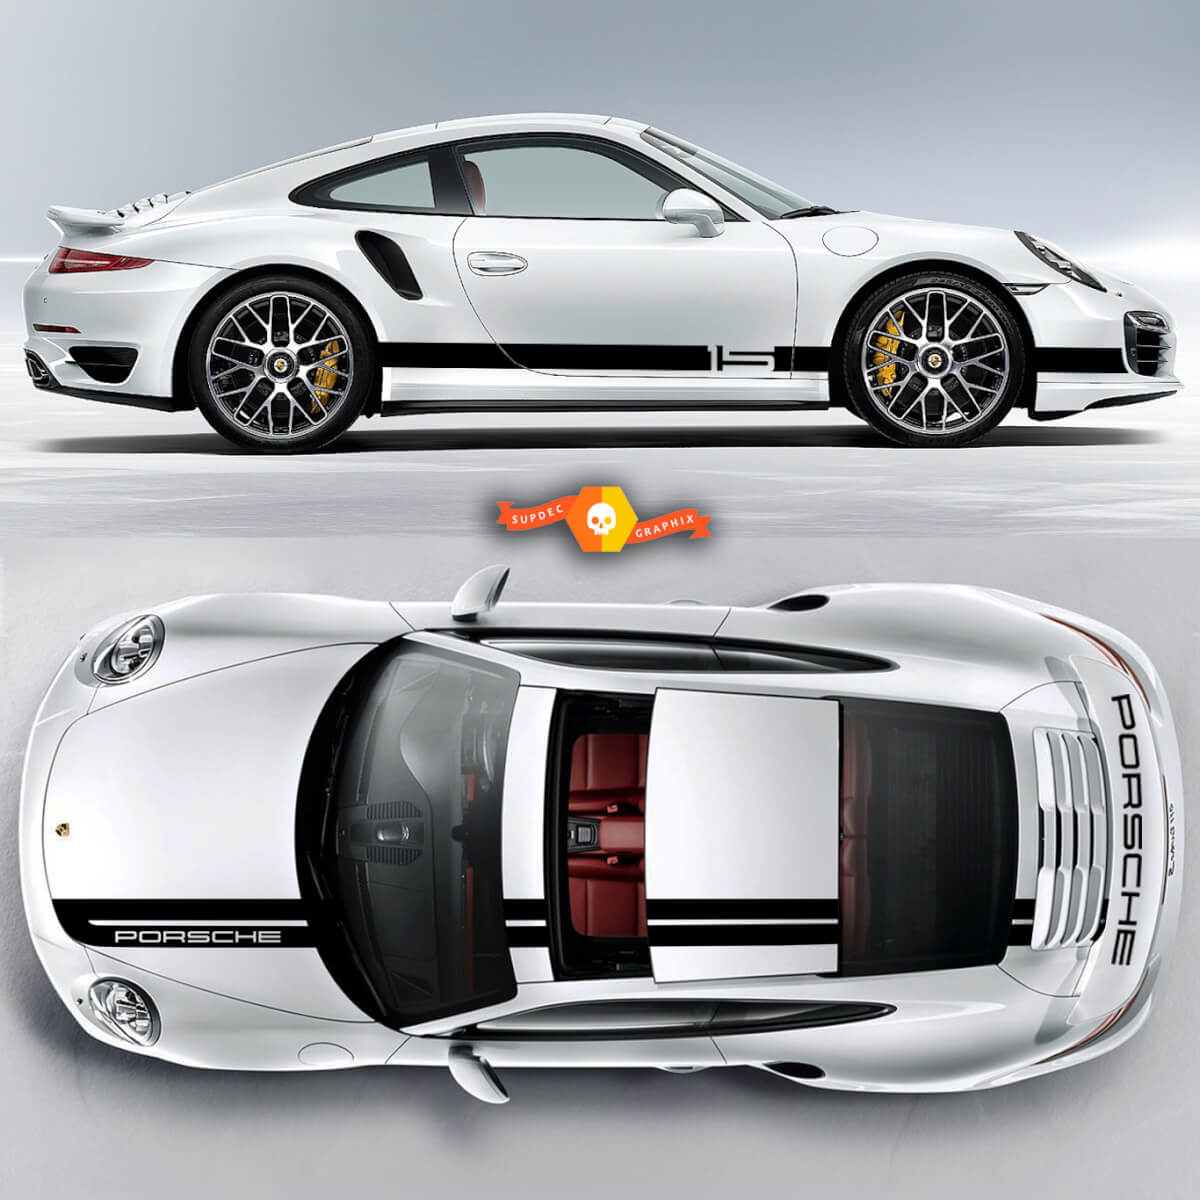 One Color Sport Cup Edition Graphic Decals Kits Racing Stripe Over The Top Roof Porsche And